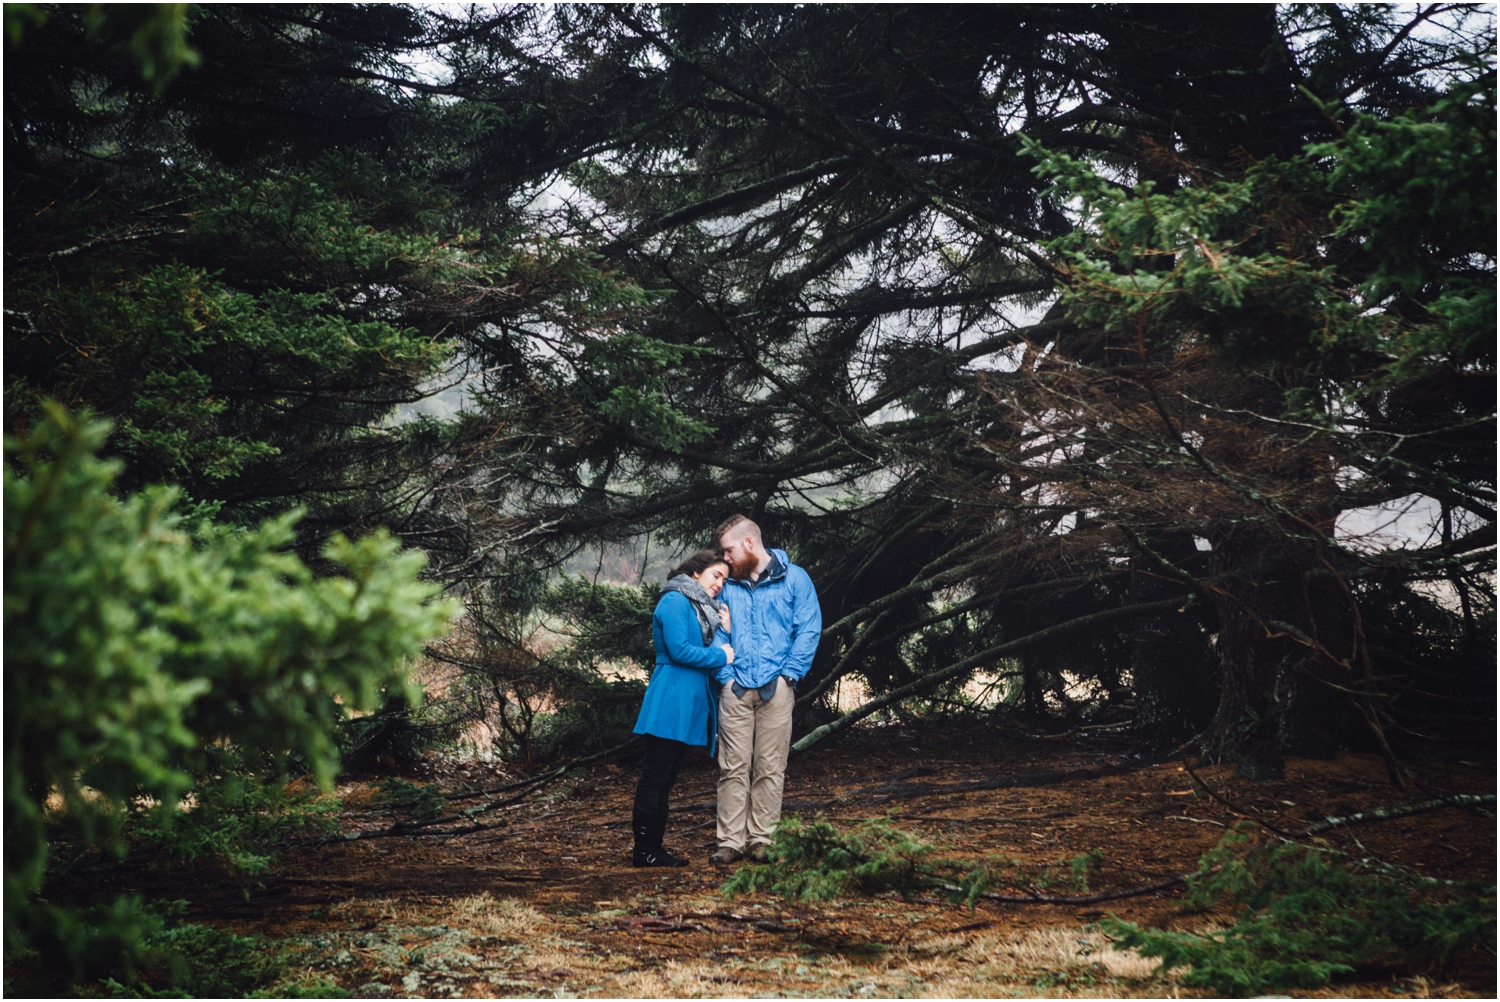 katy-sergent-photography-grayson-highlands-engagement-session-mouth-of-wilson-virginia-damascus-appalachian-trail-tennessee-wedding-elopement_0006.jpg